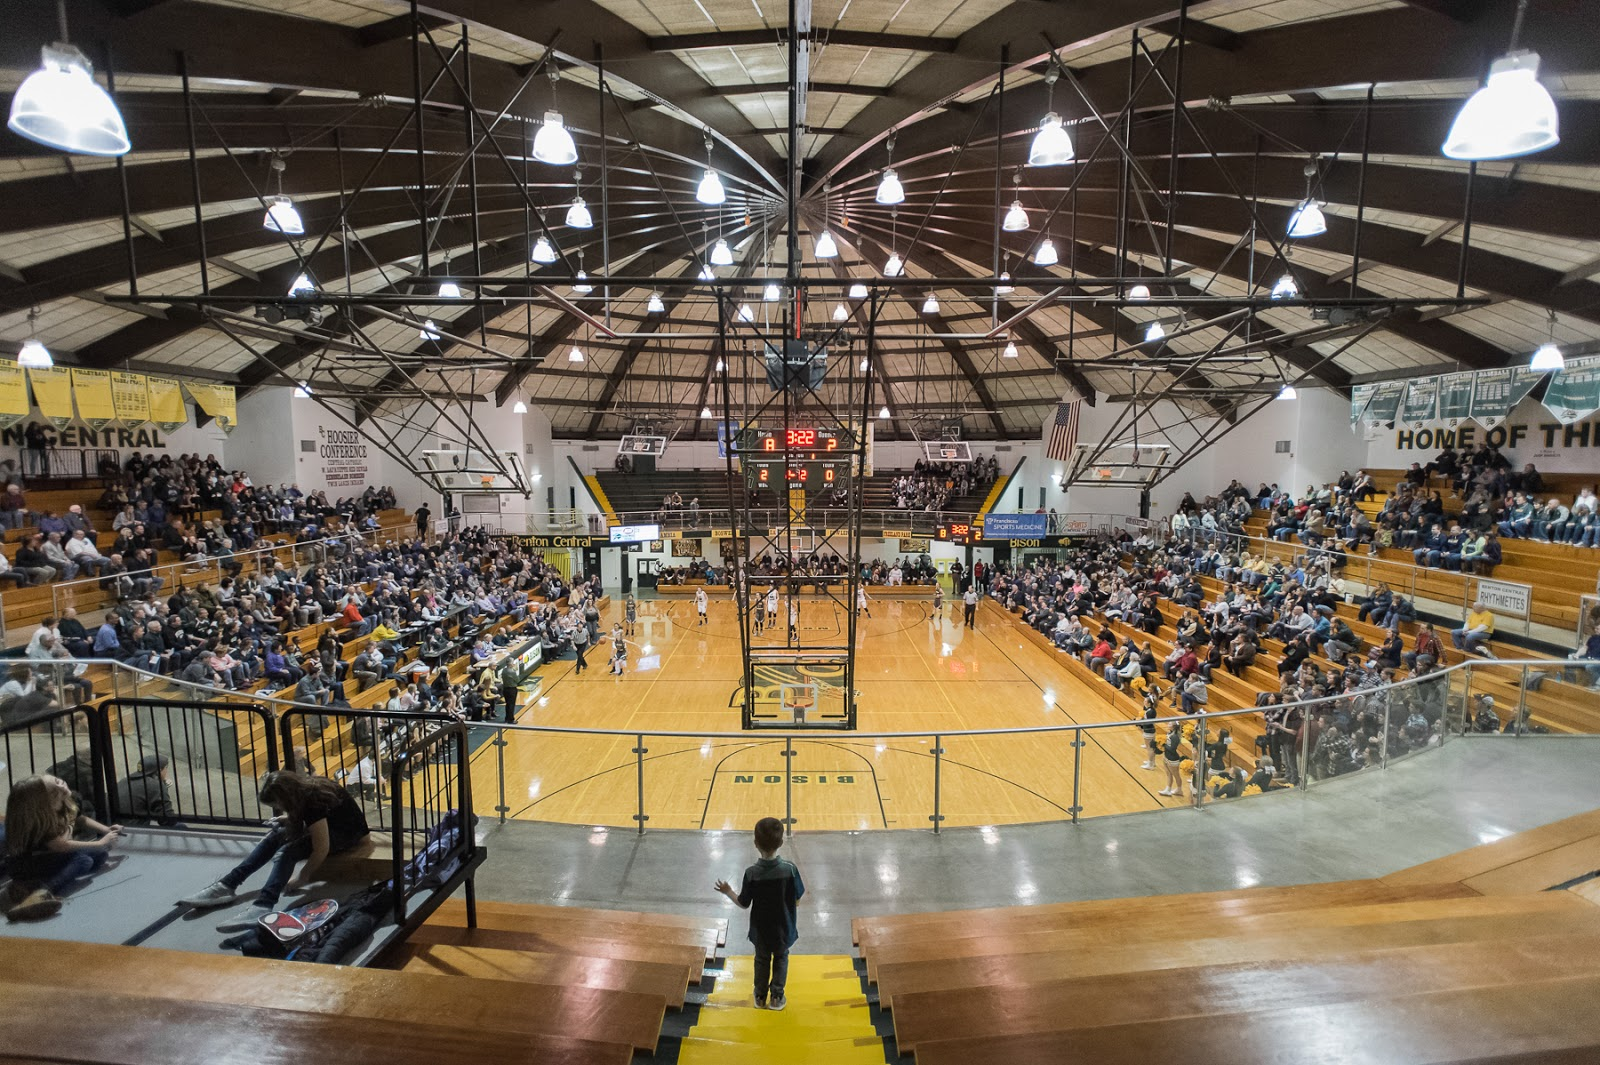 Tell City Indiana >> Hoosier Hardwood: benton central, scenes from a sectional